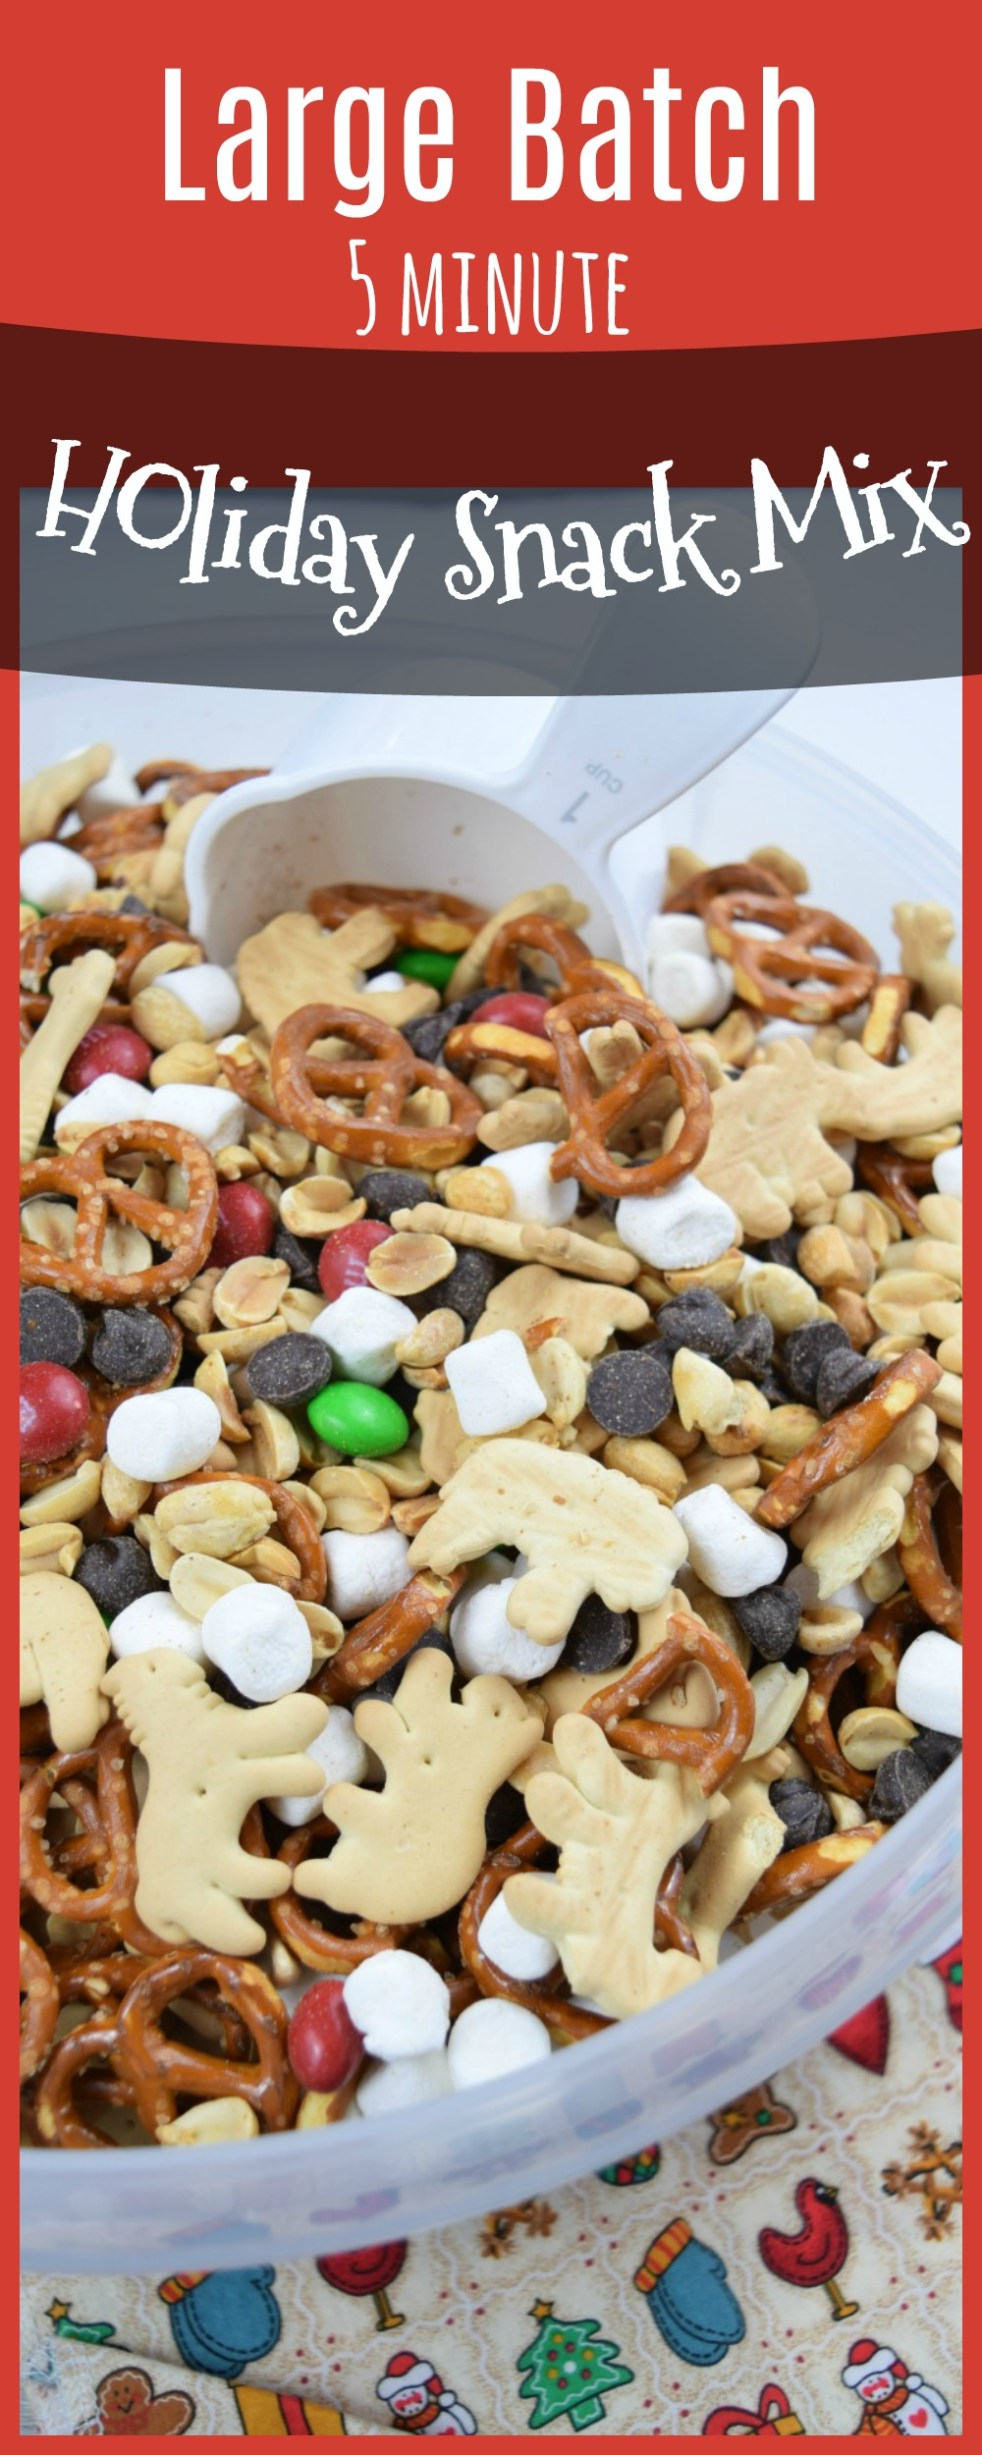 large batch holiday snack mix